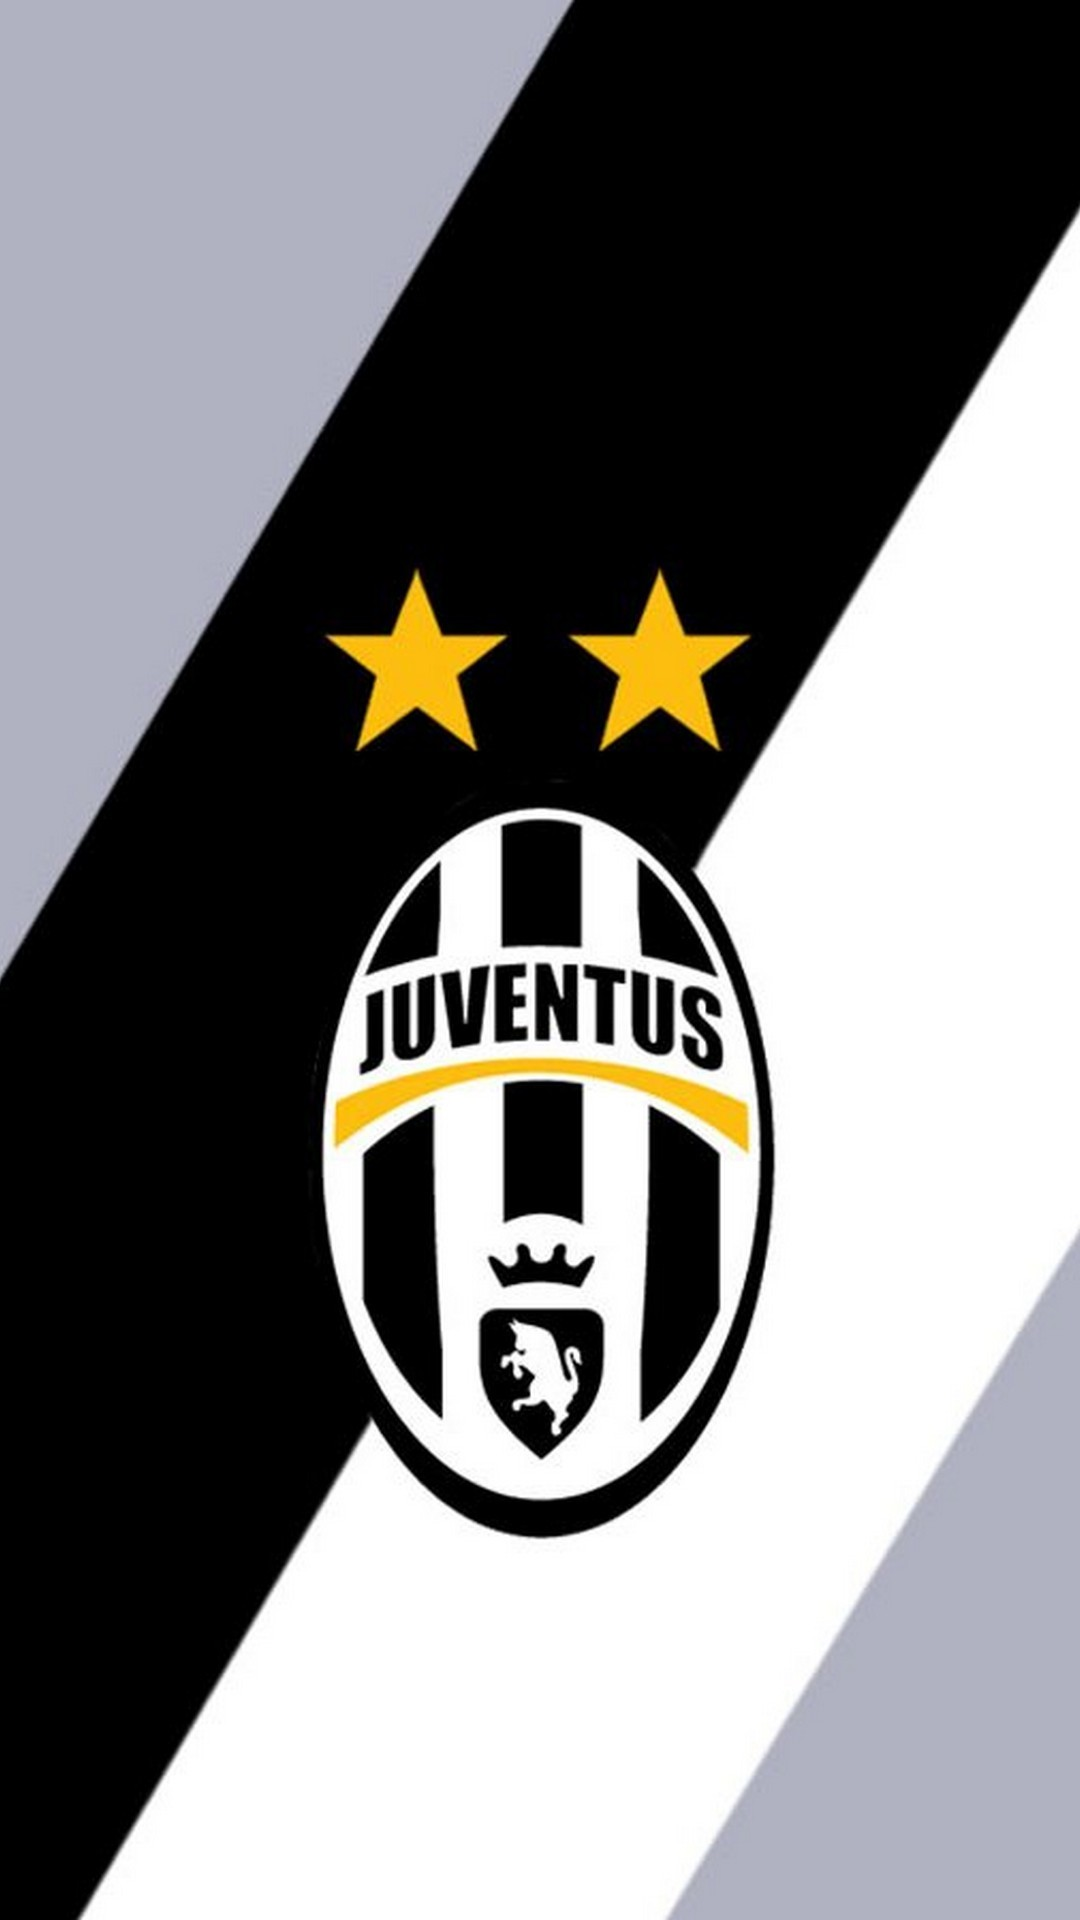 Juventus Wallpaper Iphone X Juventus Wallpaper 2018 72 Images